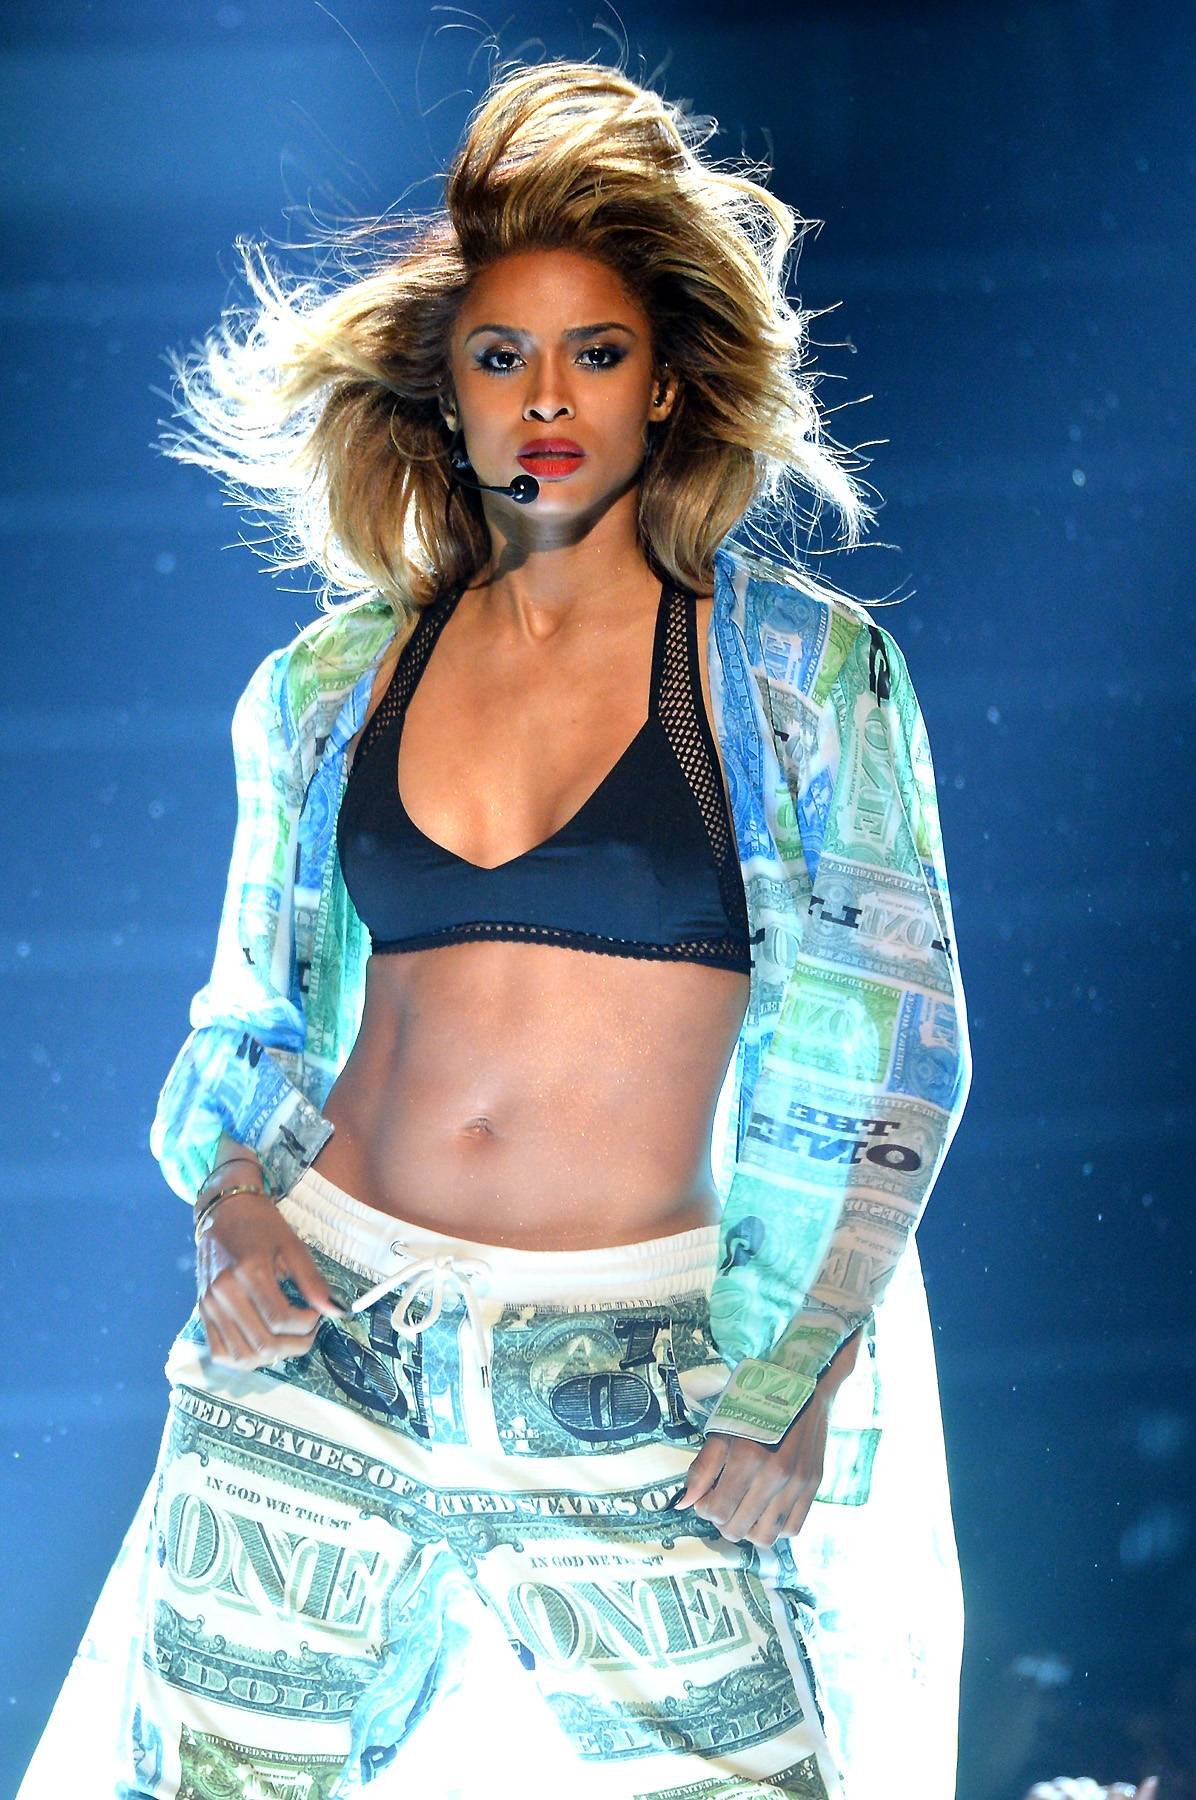 """Best Dance Performance: Ciara - """"Body Party"""" - Ciara proved she's the queen of the dance floor in the video for her body-roll inducing hit R&B single. (Photo: Mark Davis/Getty Images for BET)"""